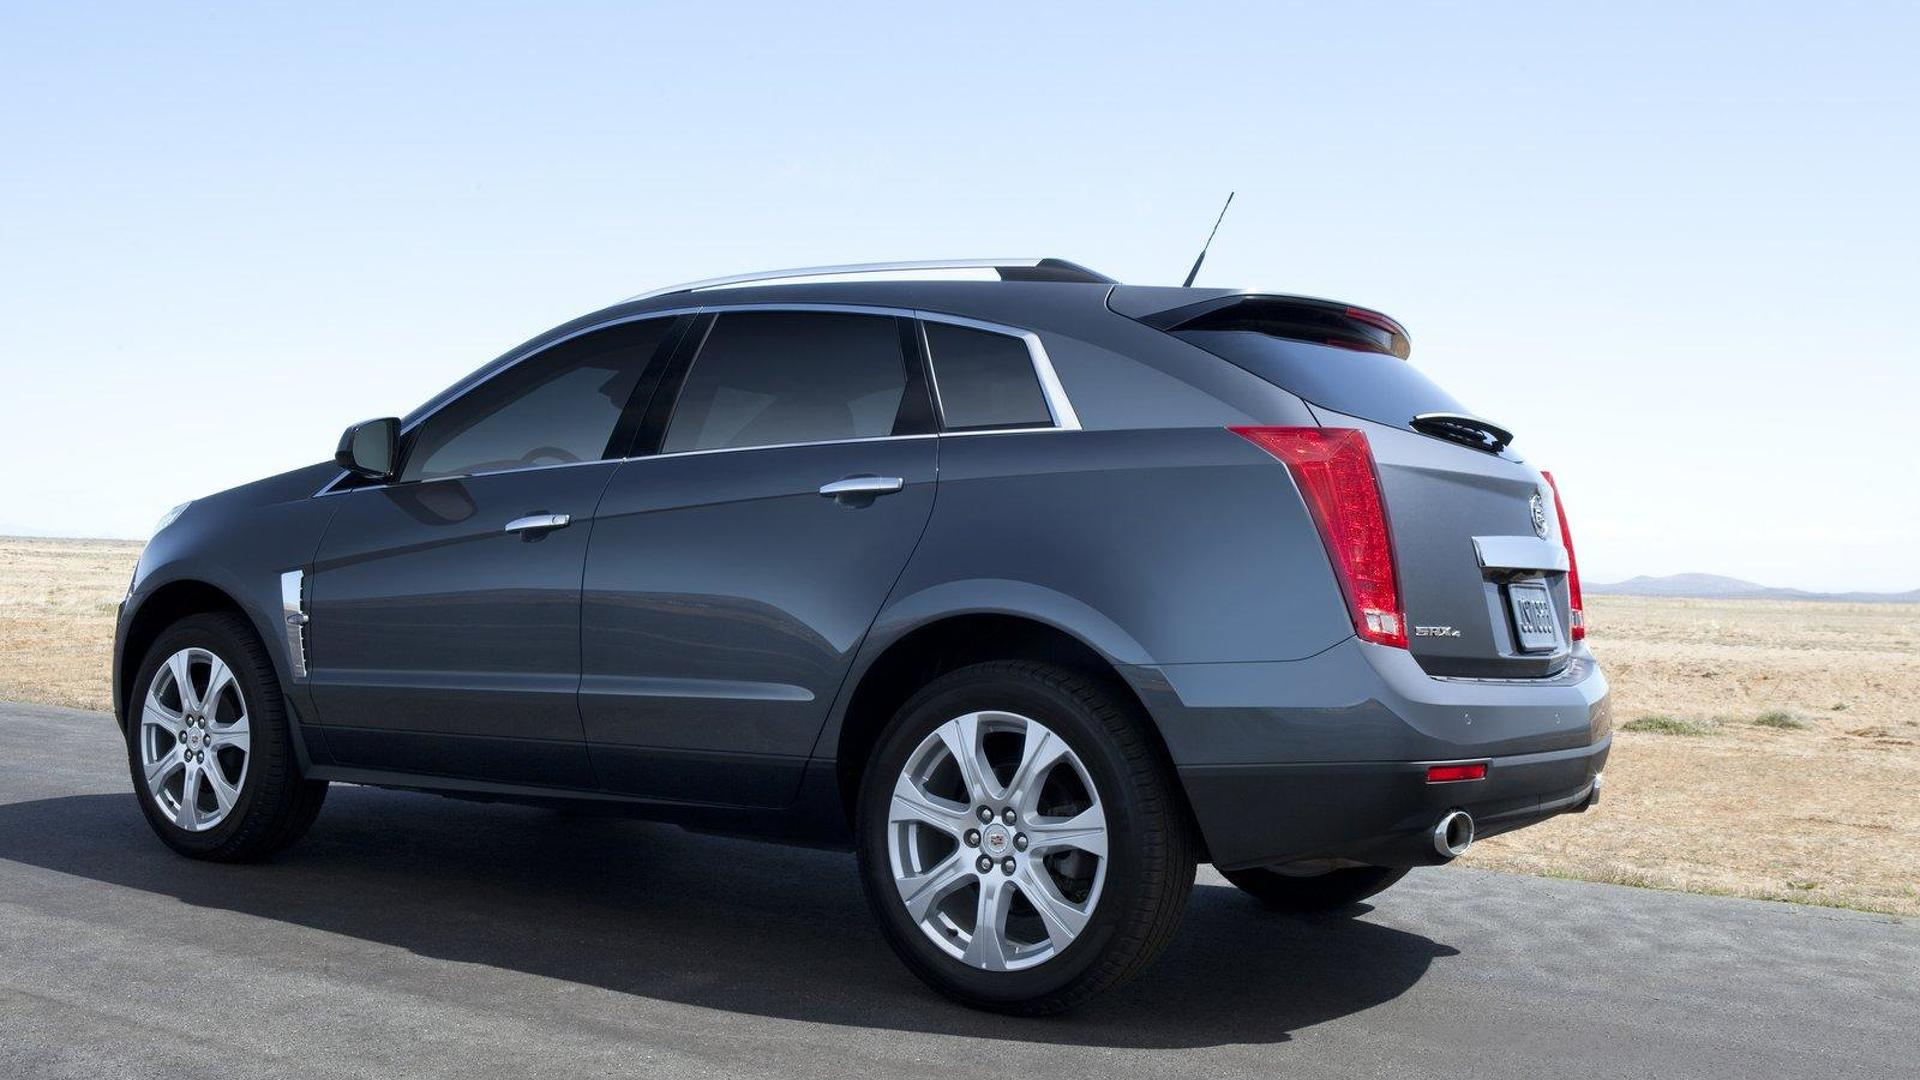 srx knh luxury auto sale sales at cadillac vehicle for collection